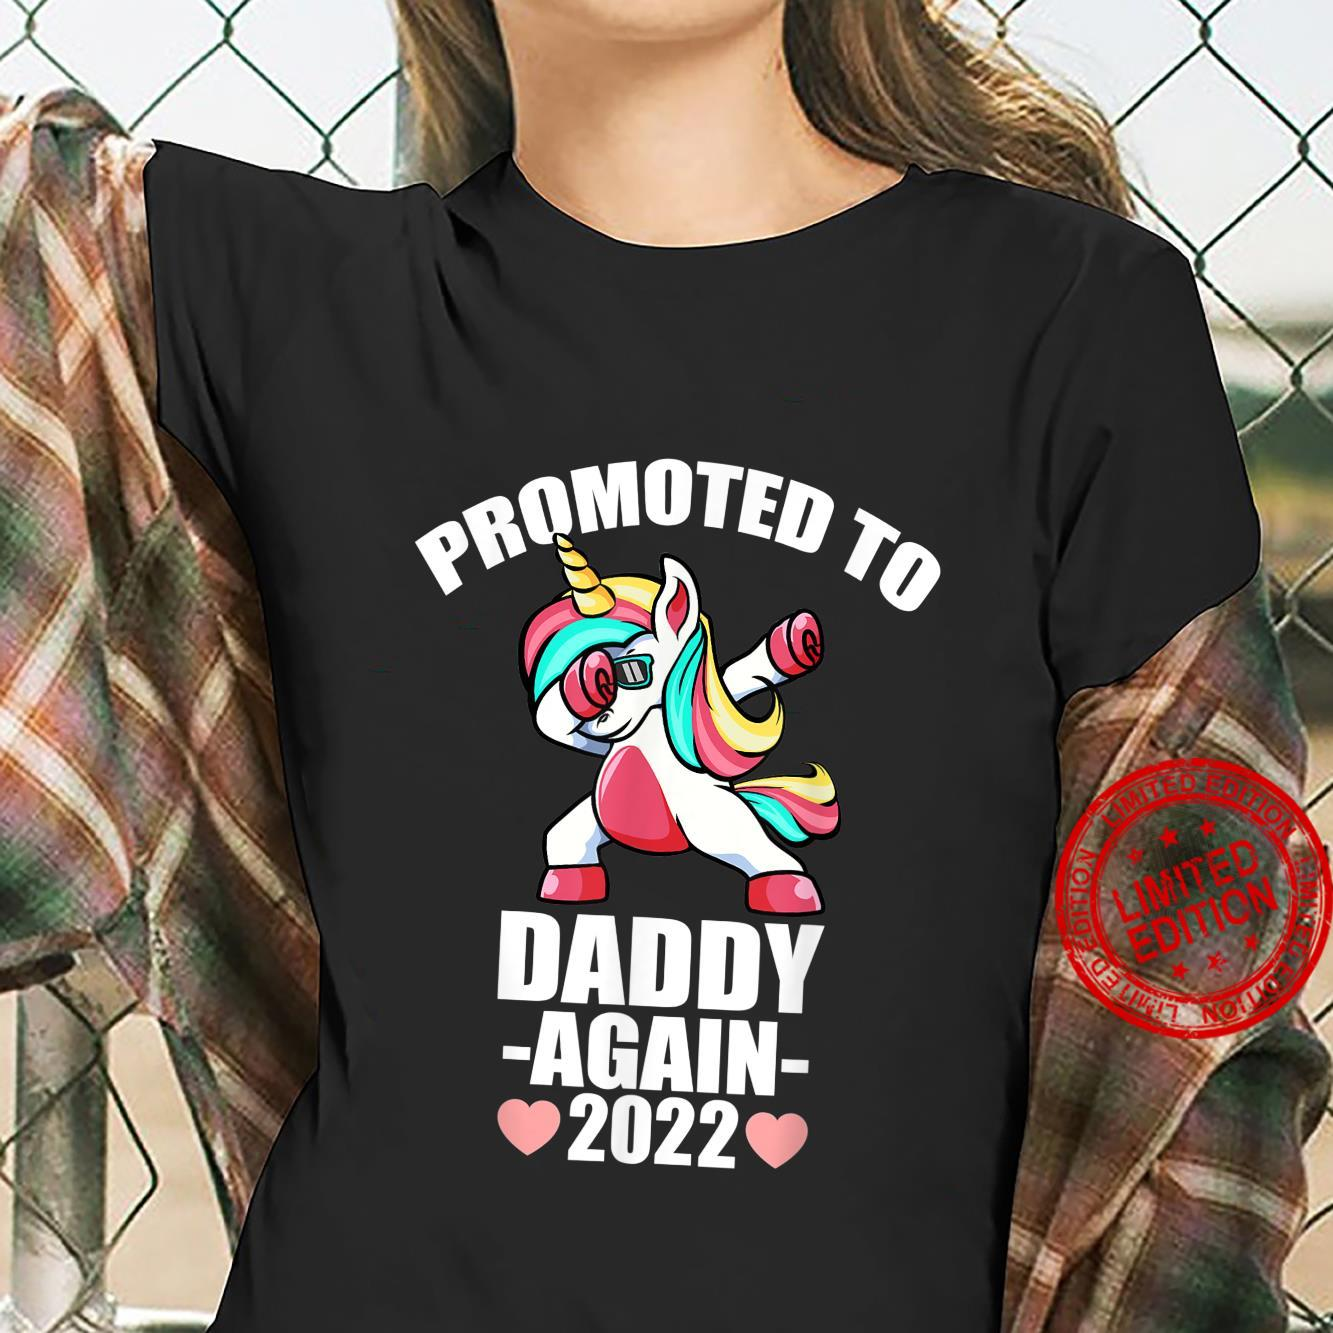 Promoted To Dad Again 2022 Shirt, Unicorn Daddy Again 2022 Shirt ladies tee